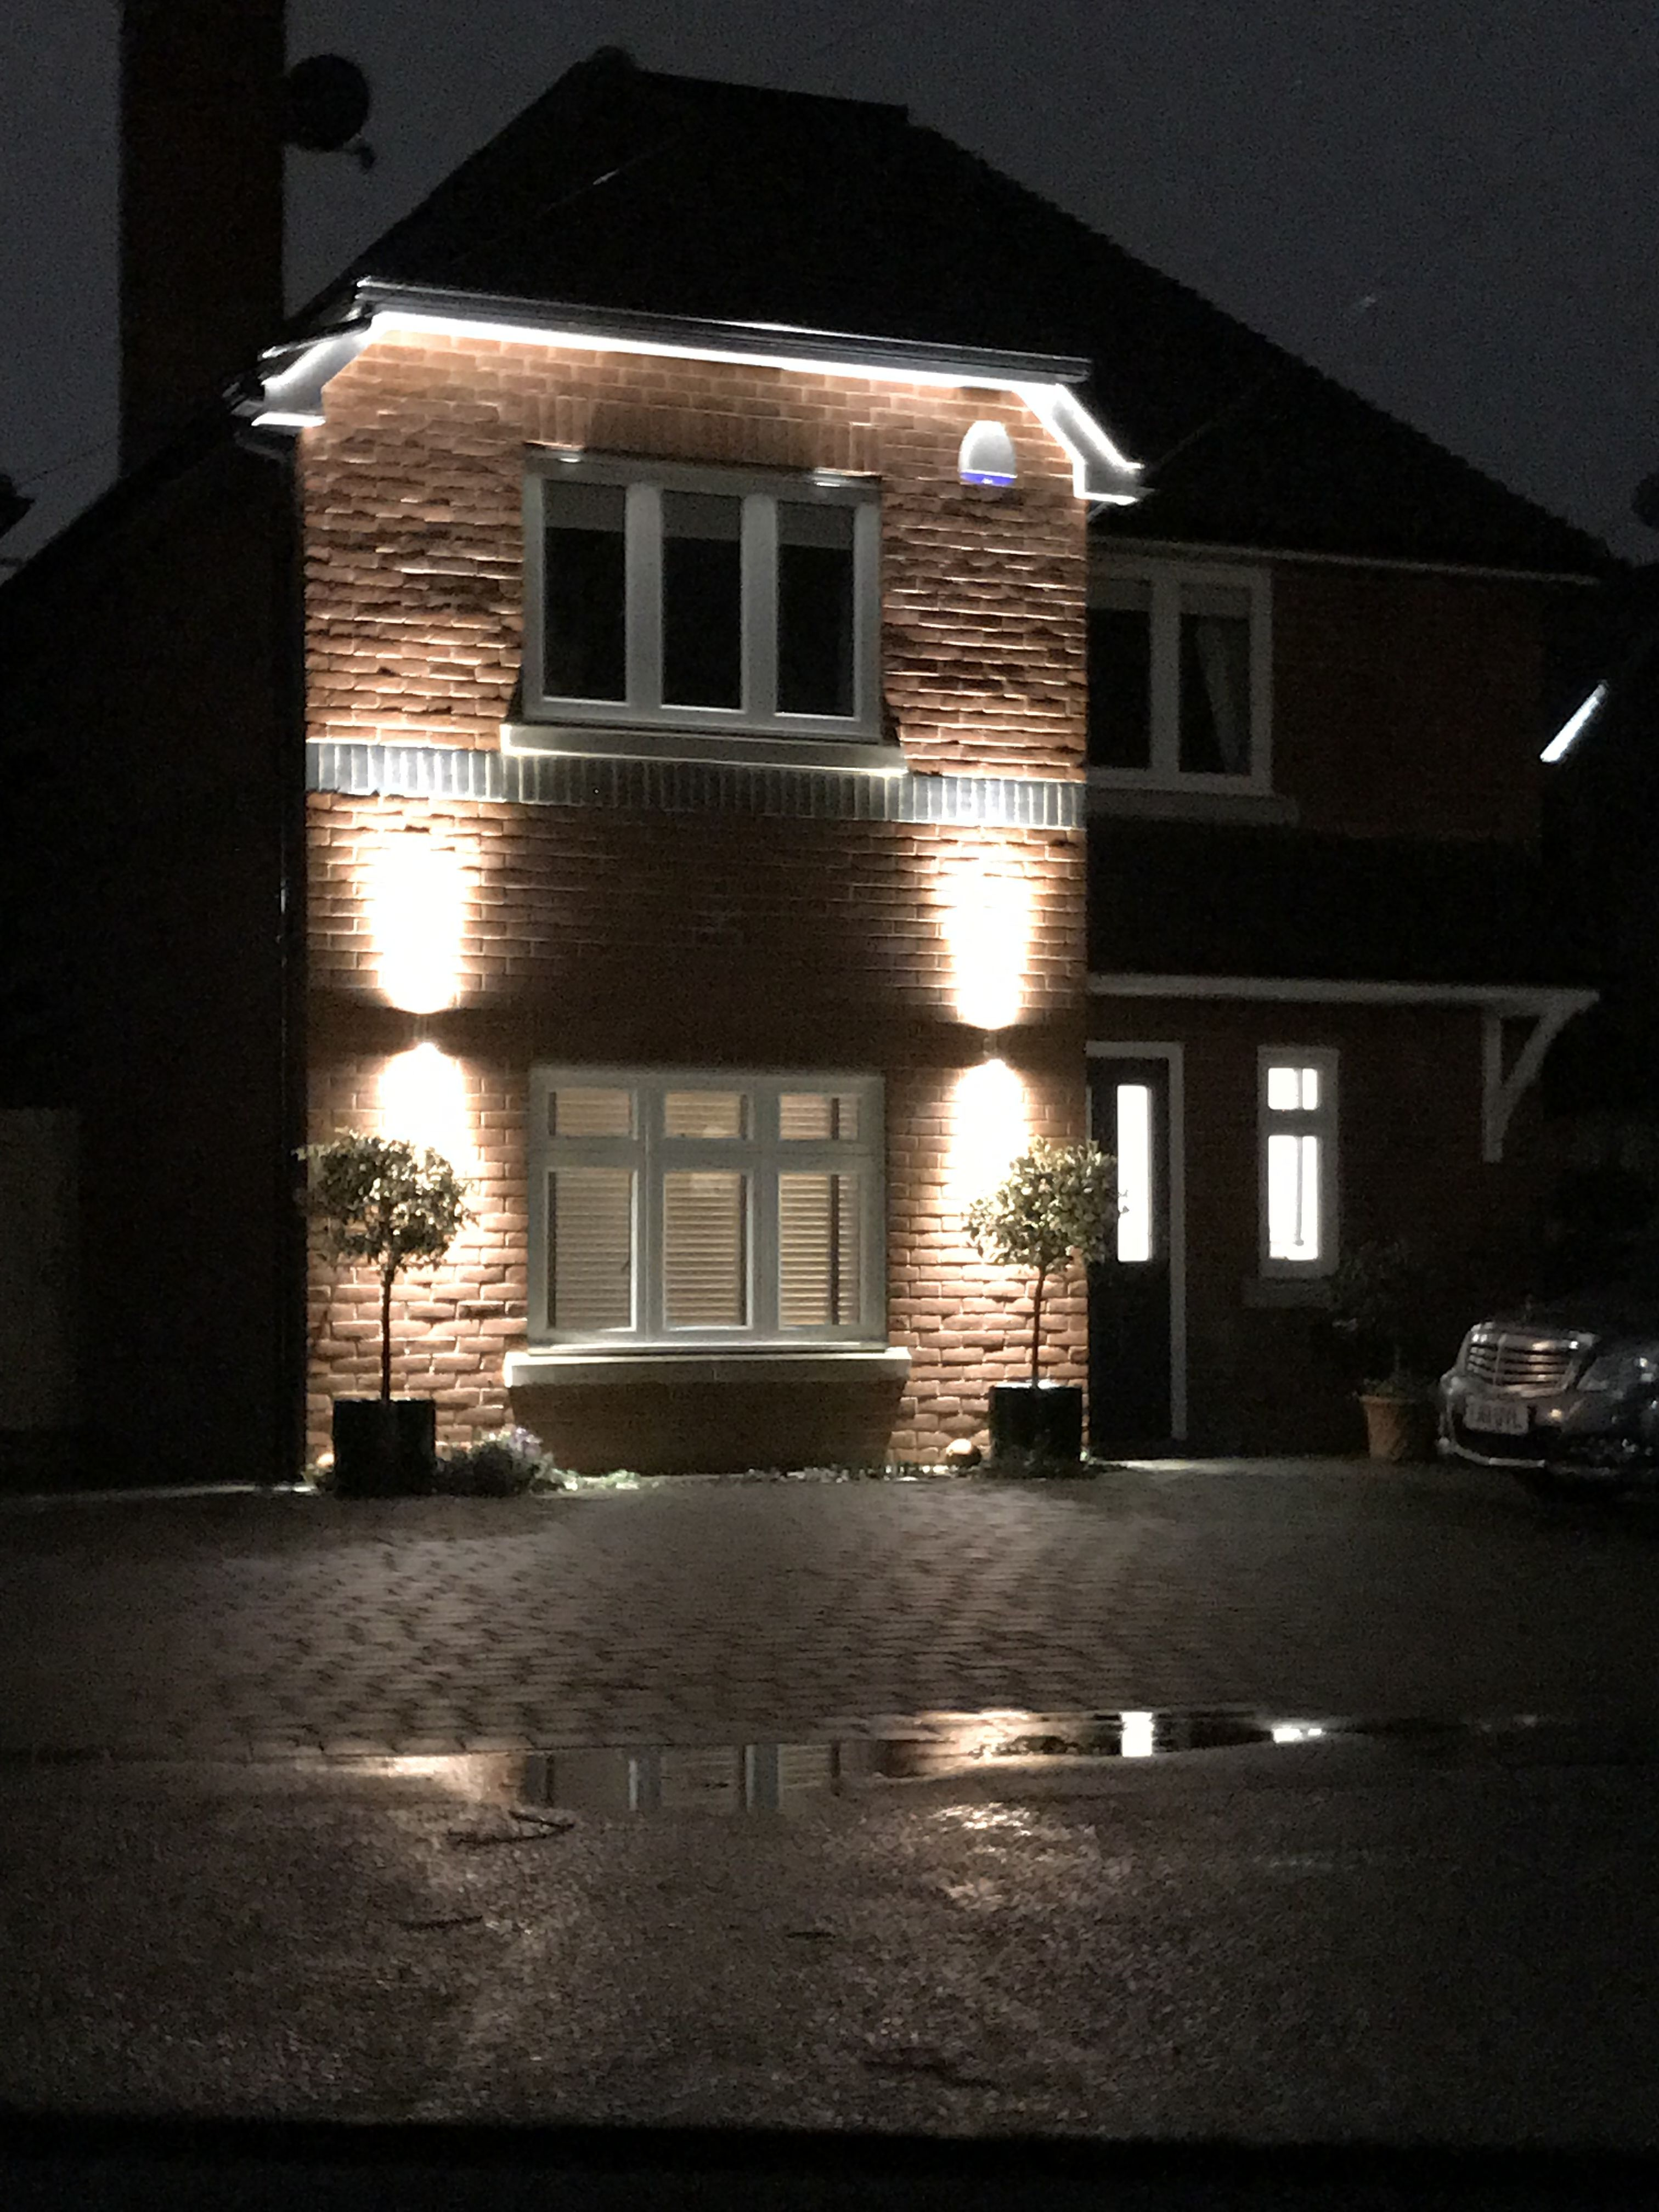 External Lighting For House With